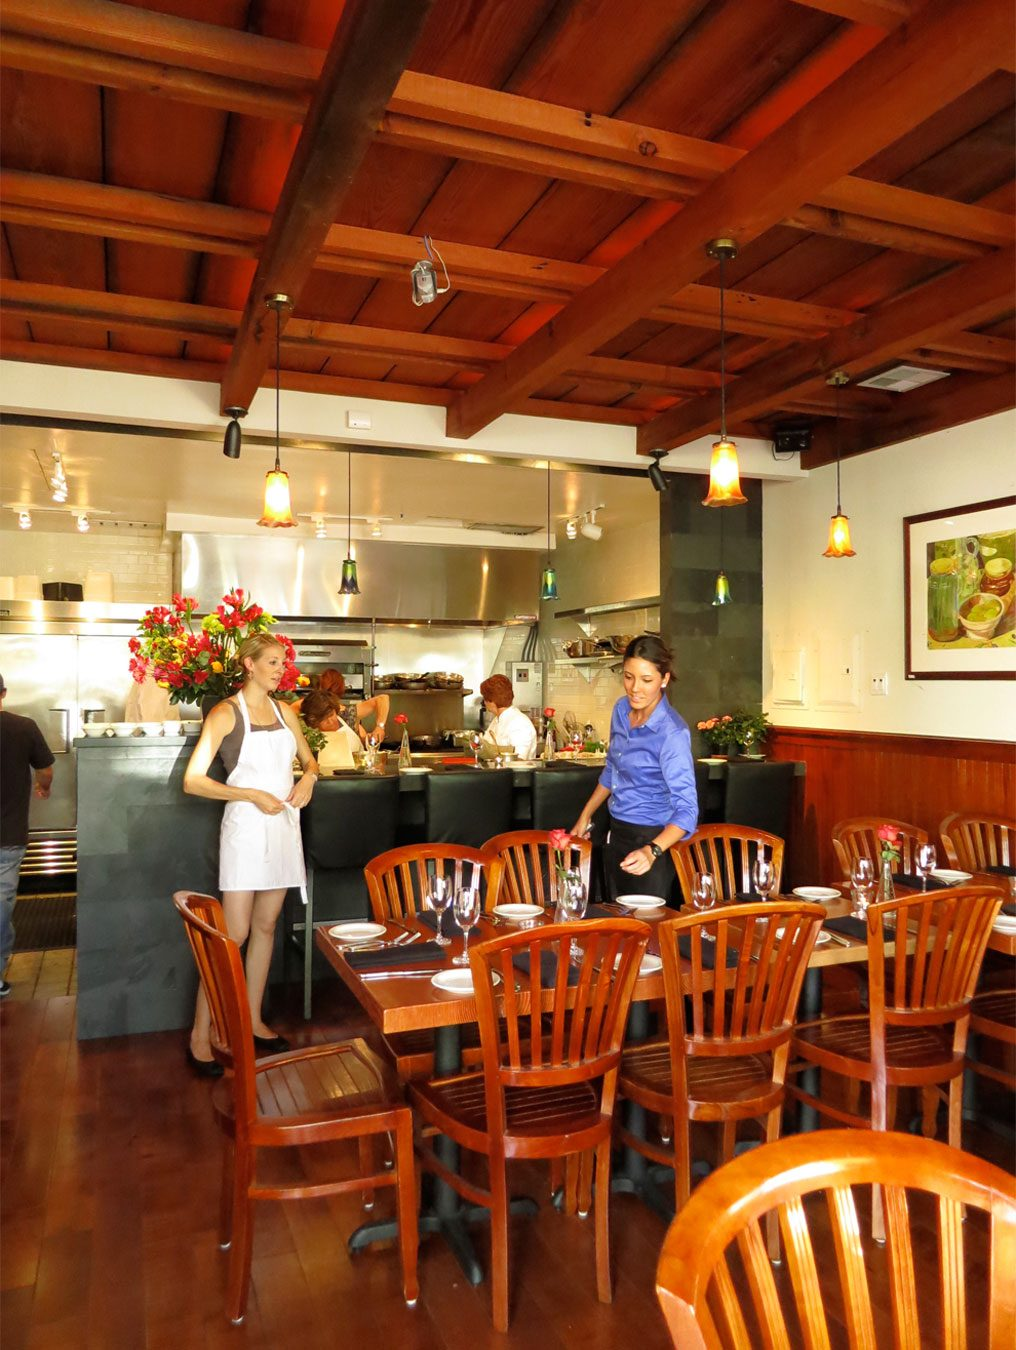 Restaurant Remodel – The Guest Chef